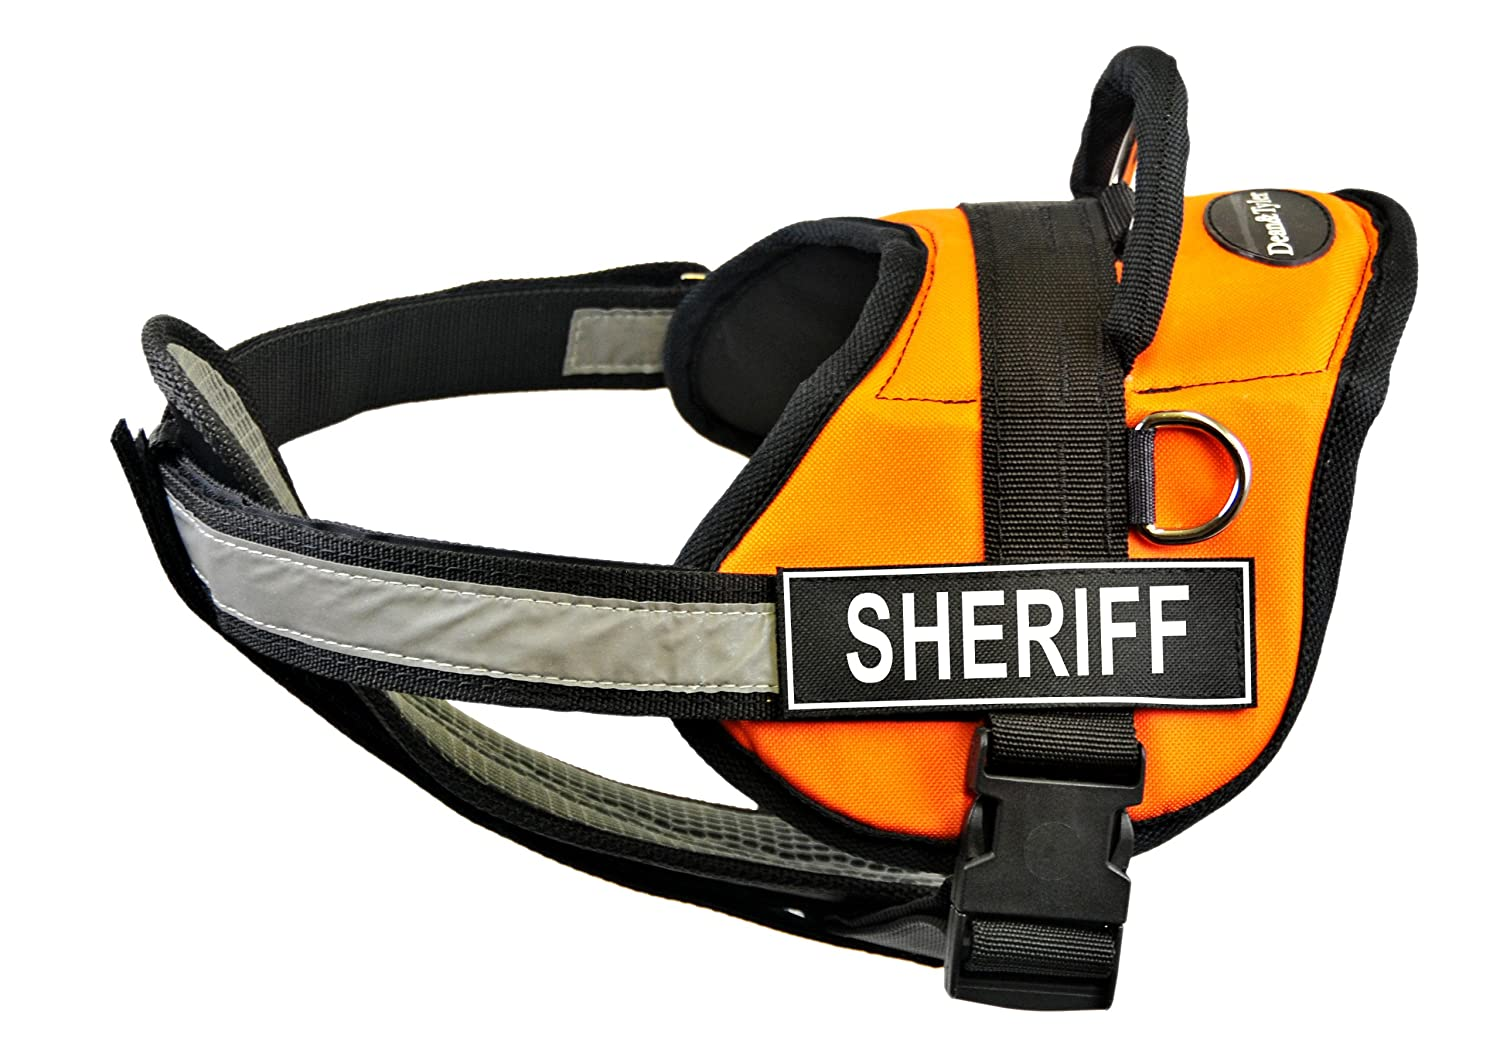 Dean & Tyler 28-Inch to 38-Inch Sheriff Dog Harness with Padded Reflective Chest Straps, Medium, orange Black